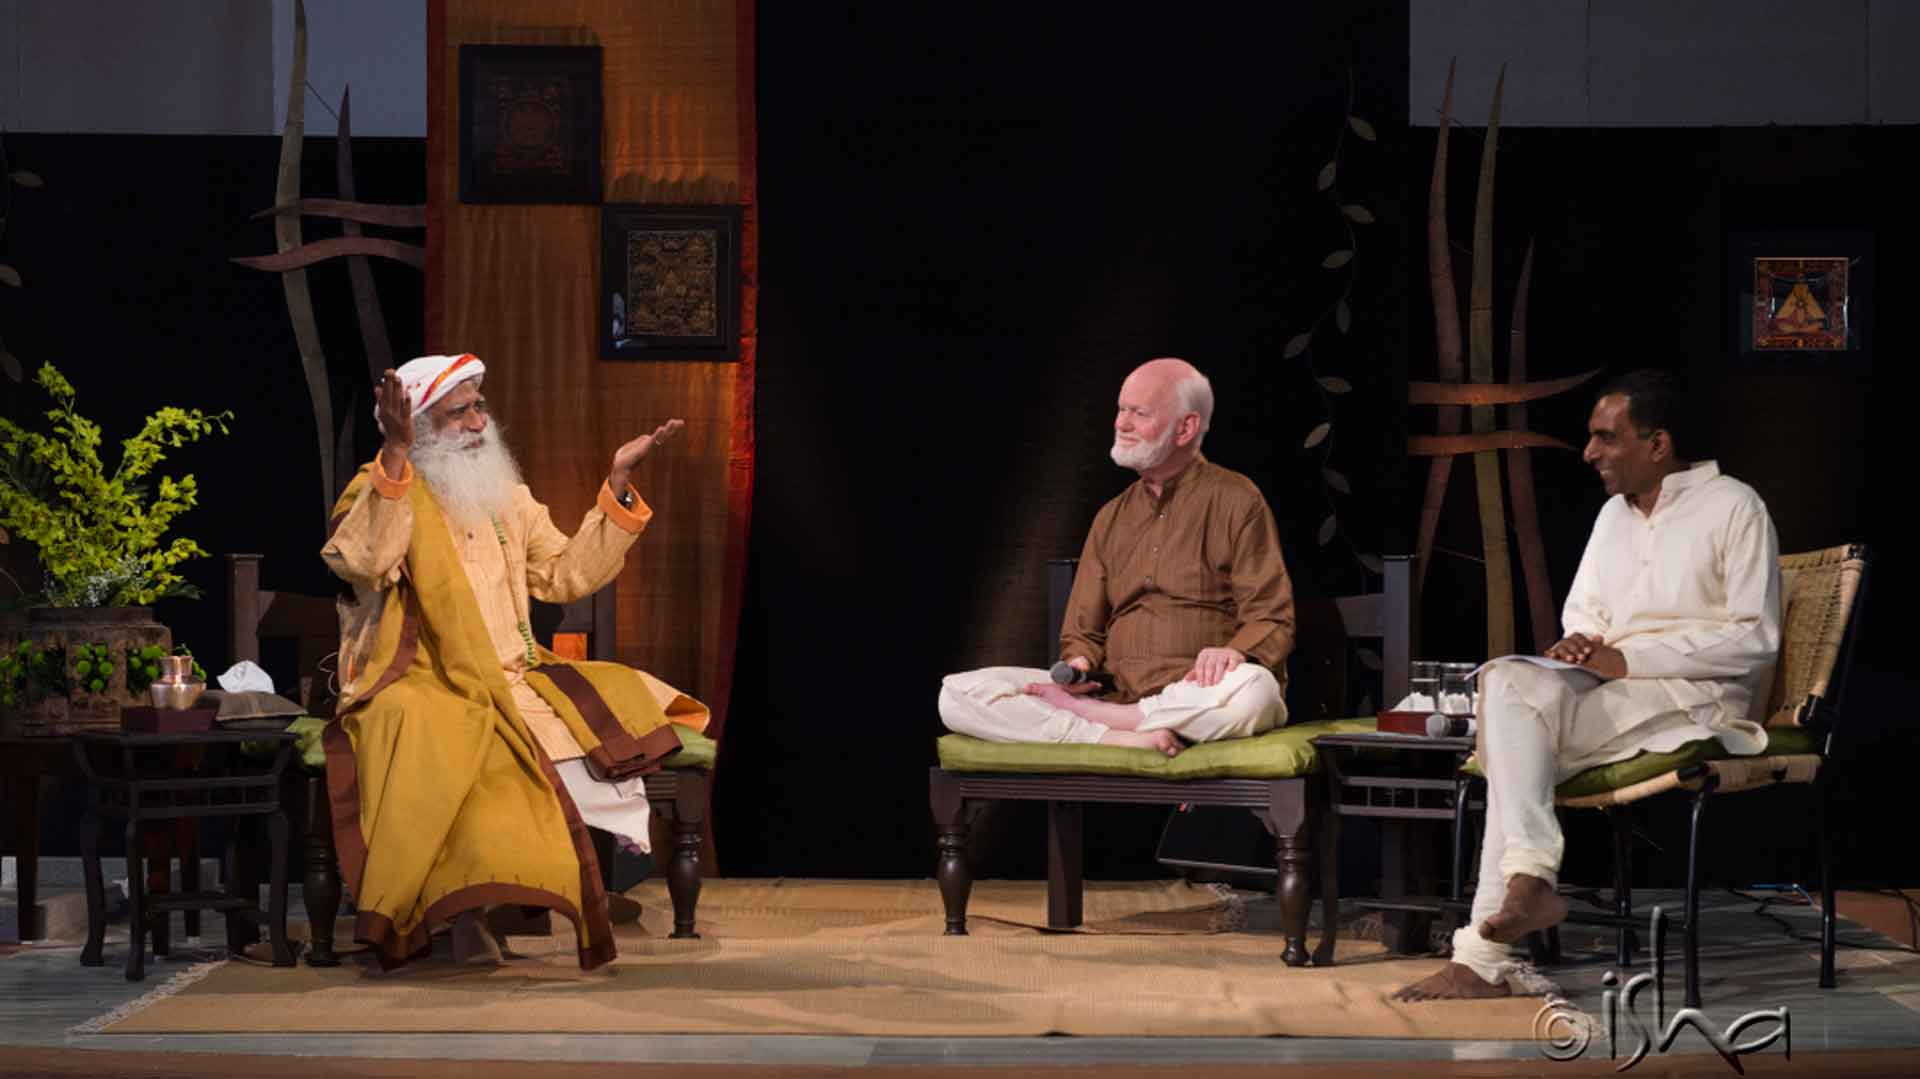 Leadership coach Marshall Goldsmith in Conversation with the Mystic